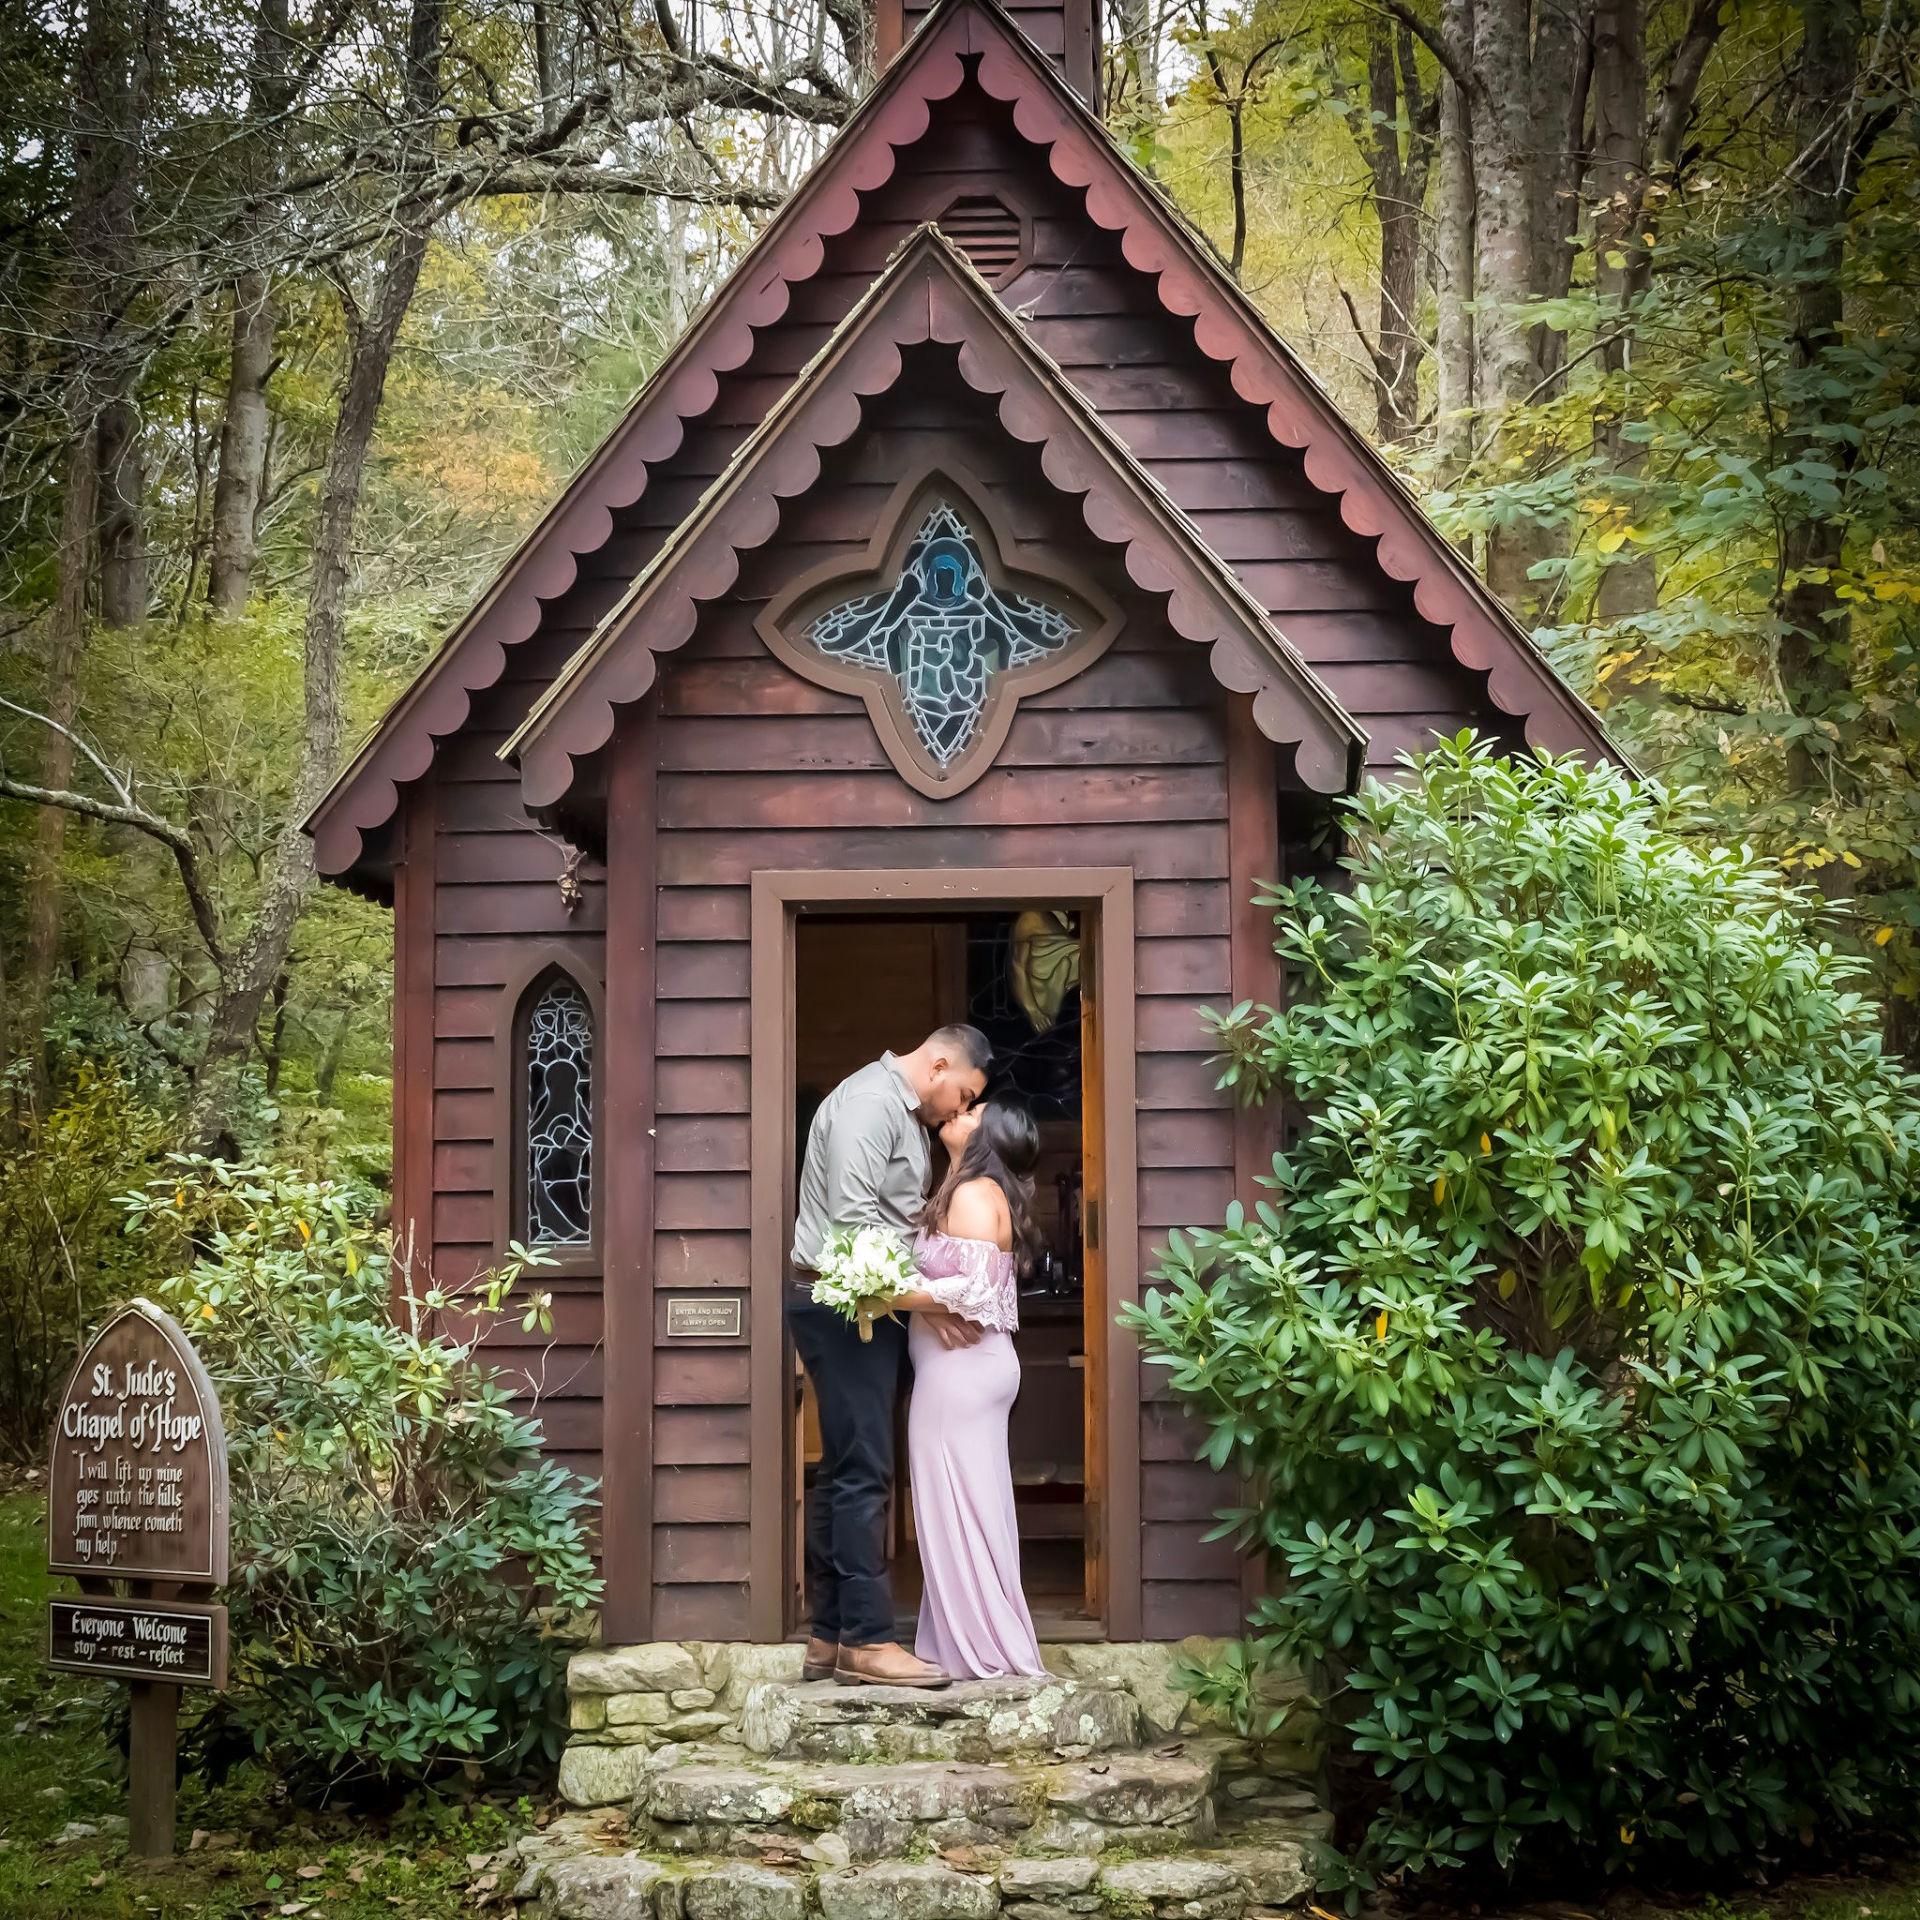 A Sweet Elopement at St. Judes Chapel of Hope